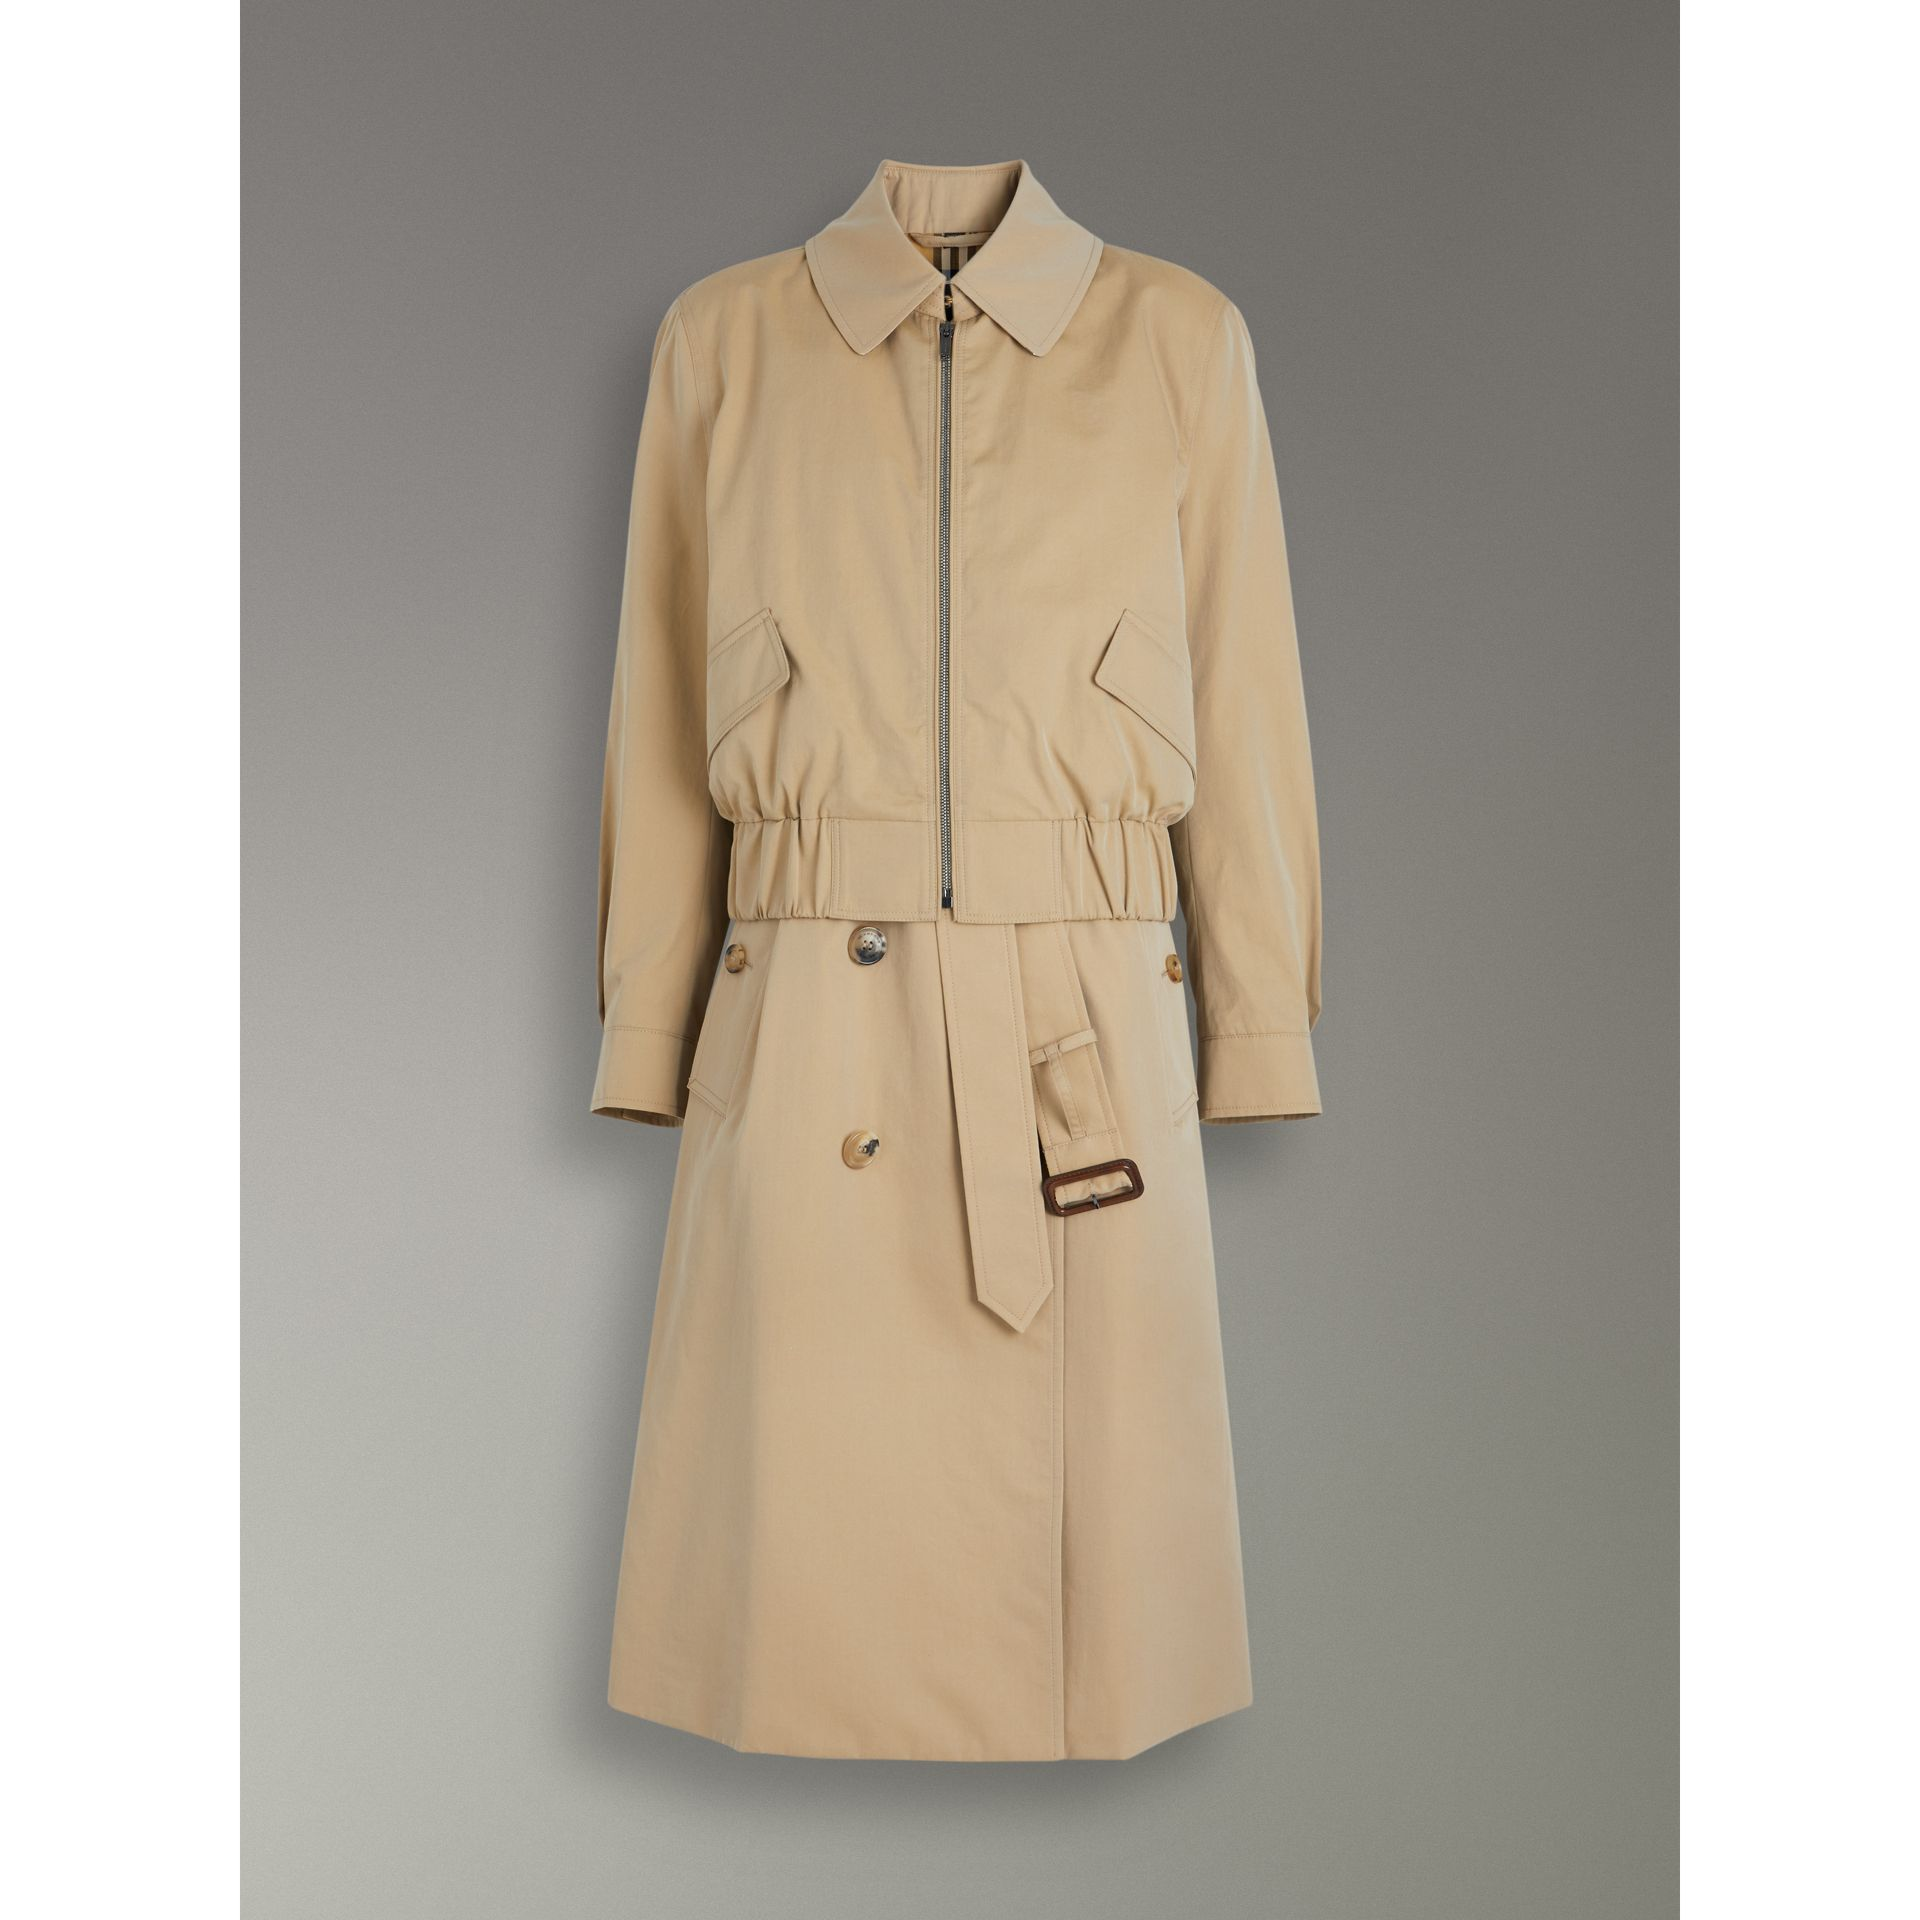 Tropical Gabardine Reconstructed Harrington Trench Coat in Honey - Women | Burberry Hong Kong - gallery image 3